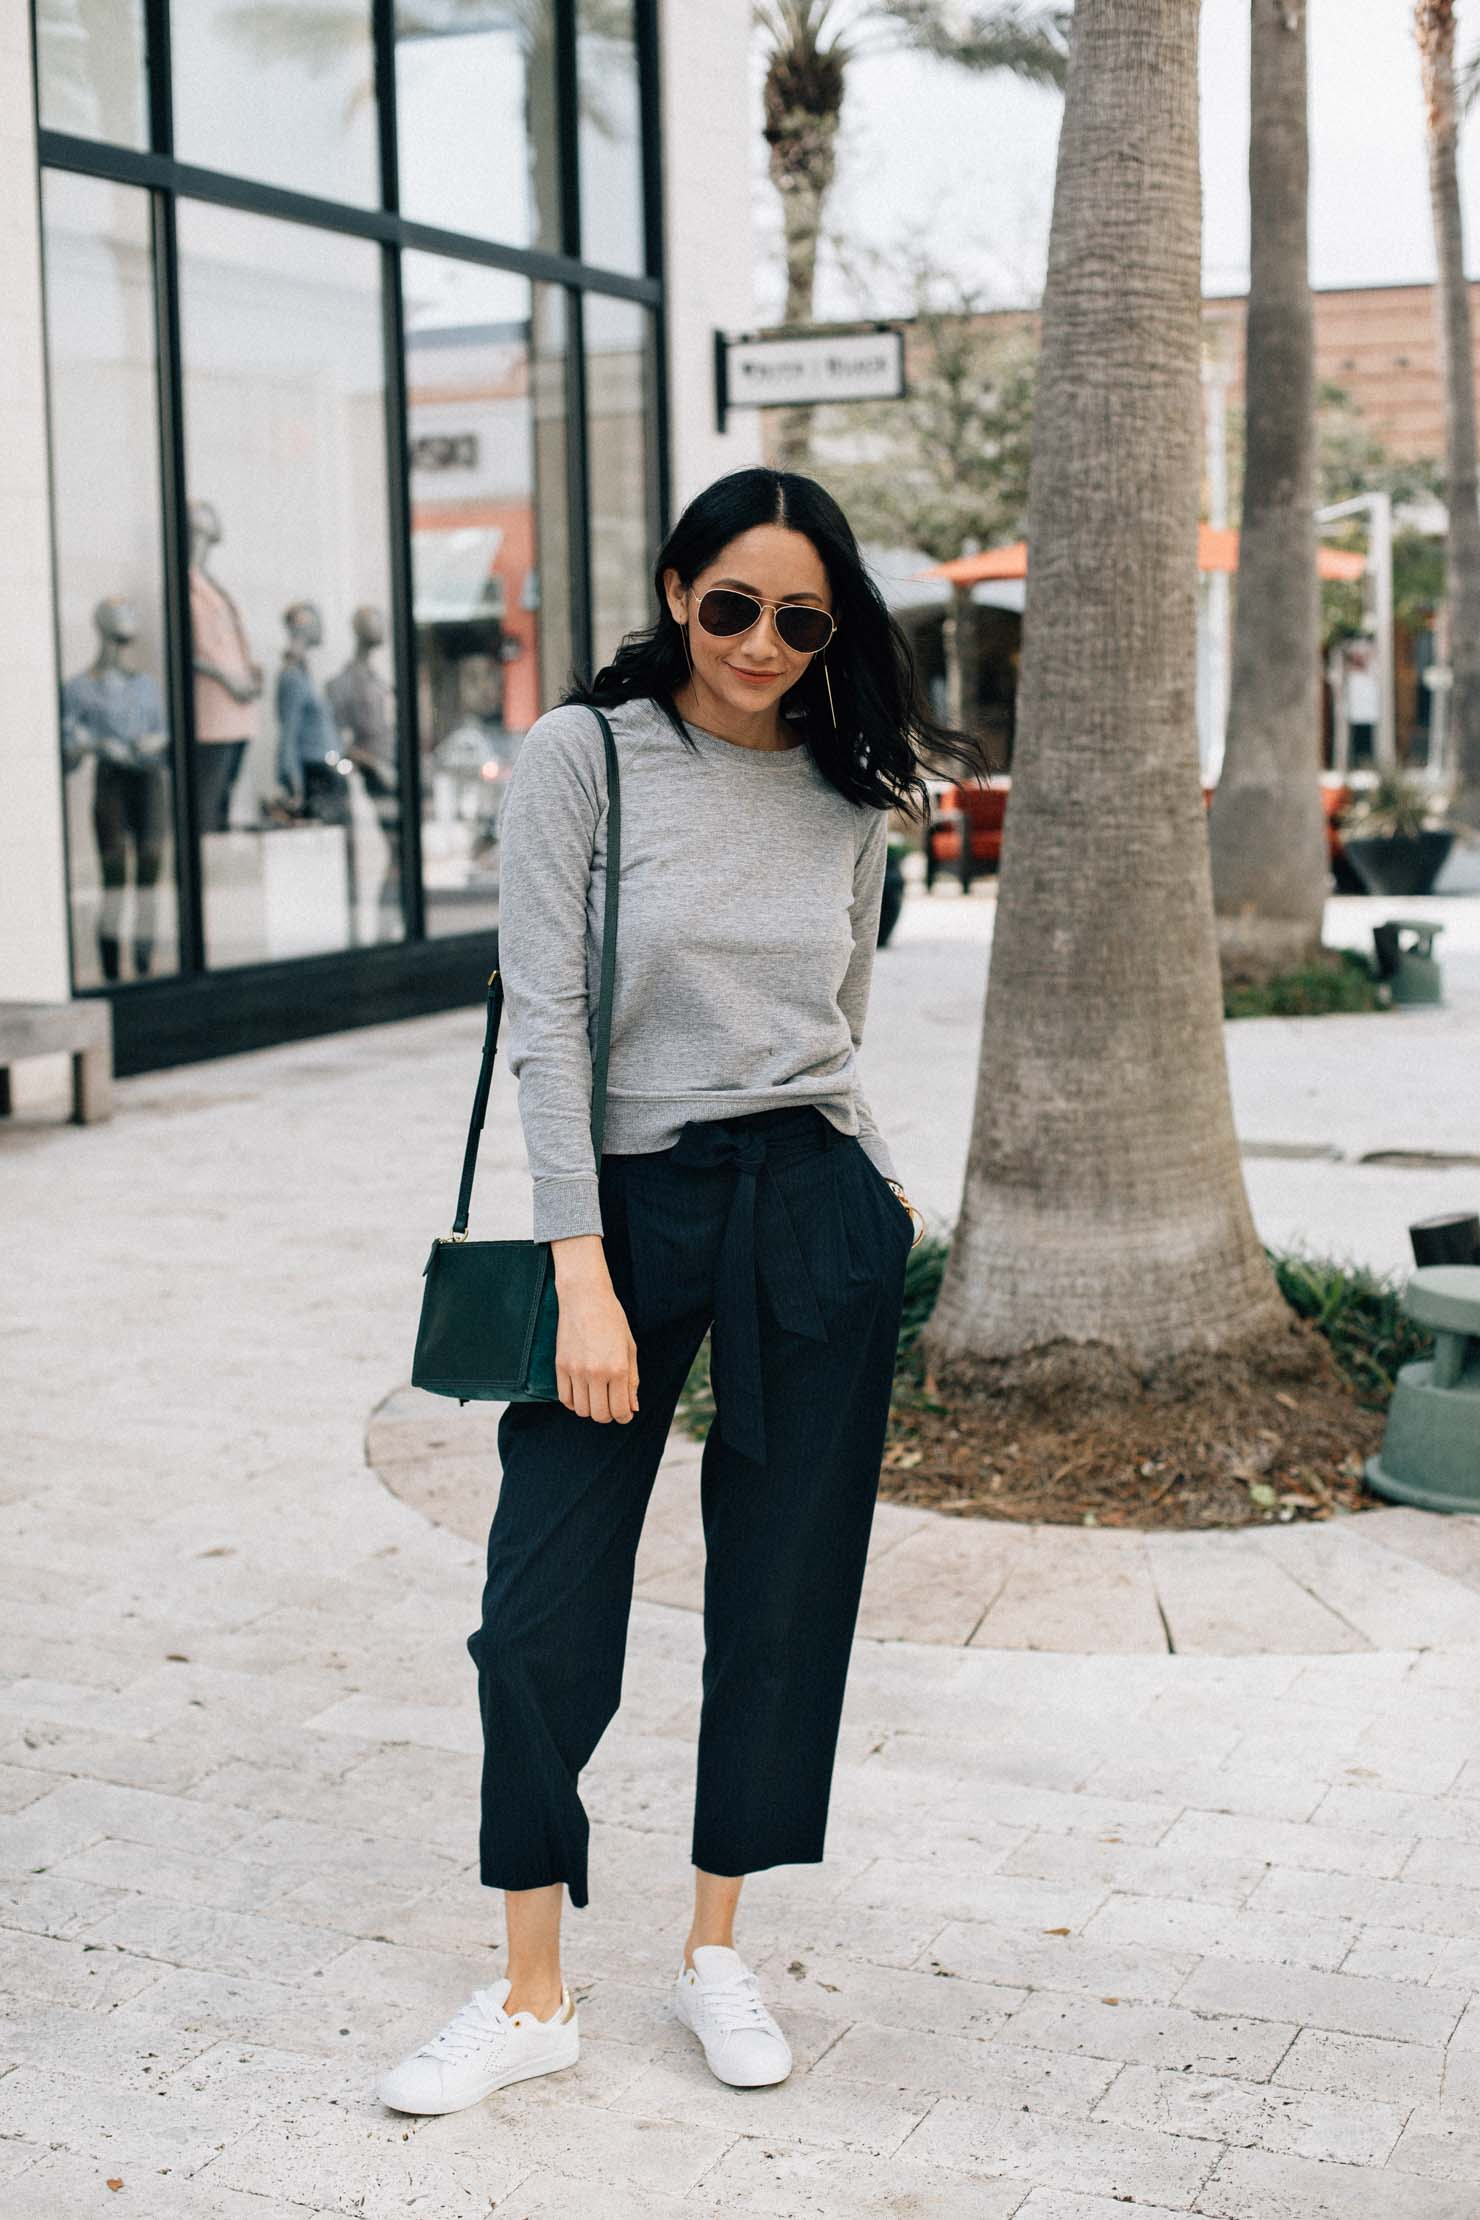 Lilly Beltran of Daily Craving blog in a casual chic outfit wearing white sneakers and slacks